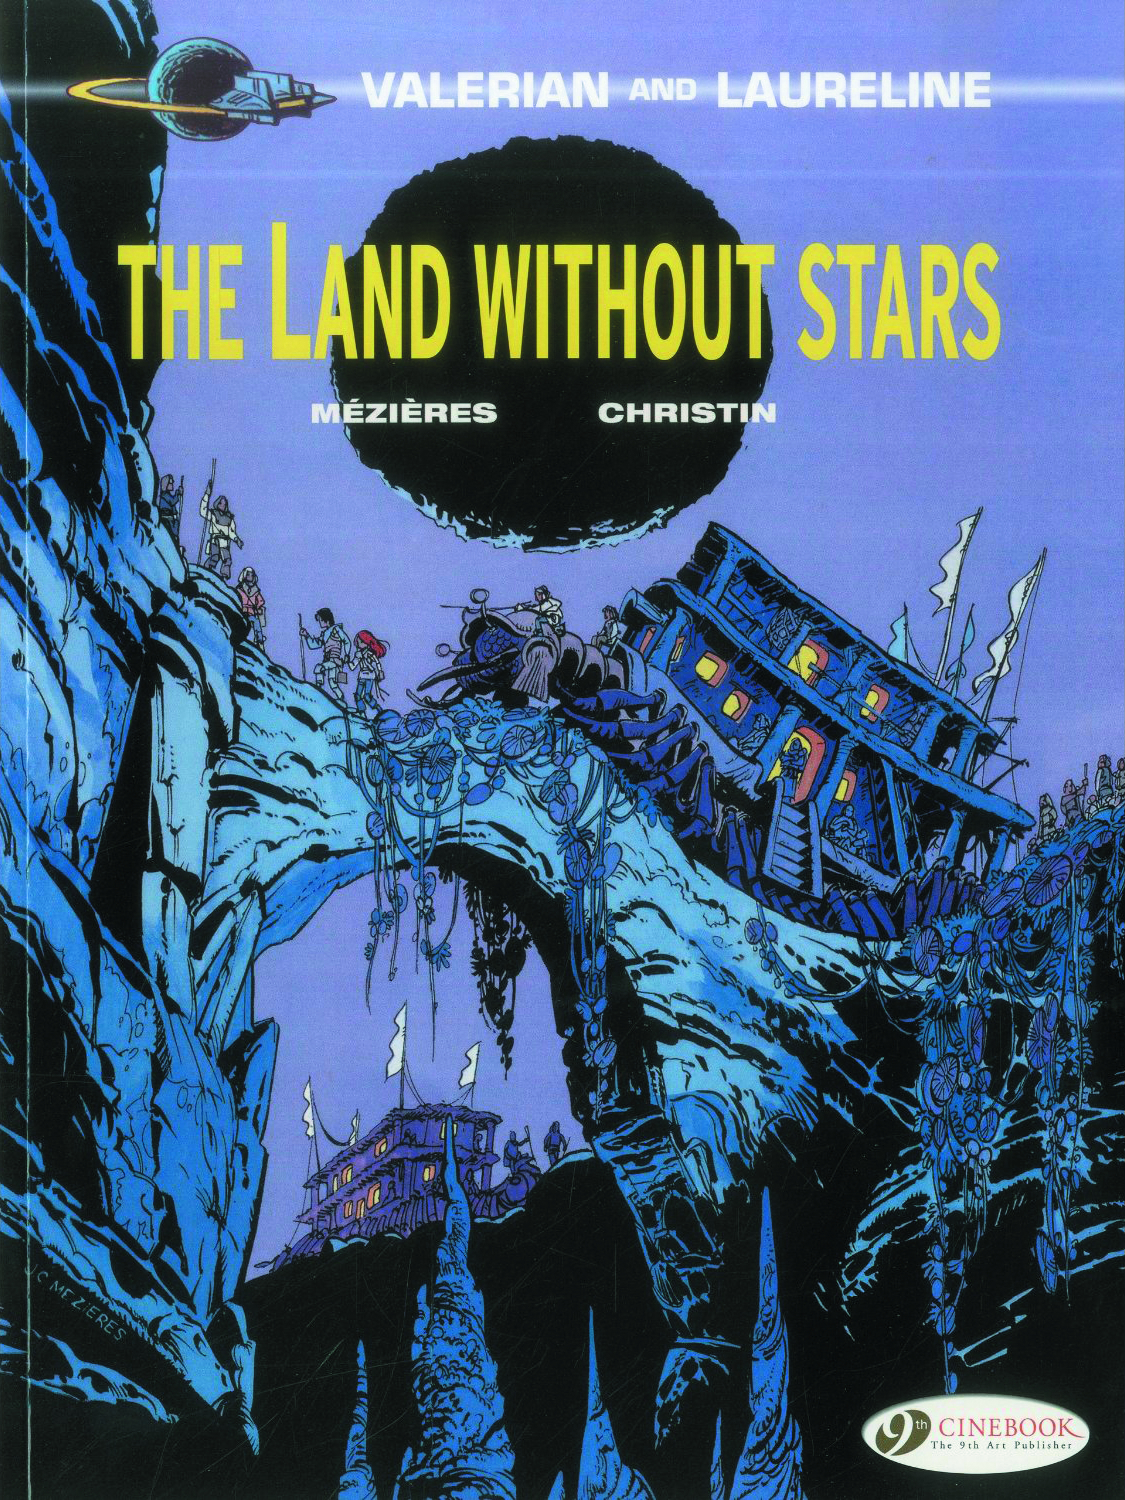 VALERIAN GN VOL 03 LAND WITHOUT STARS